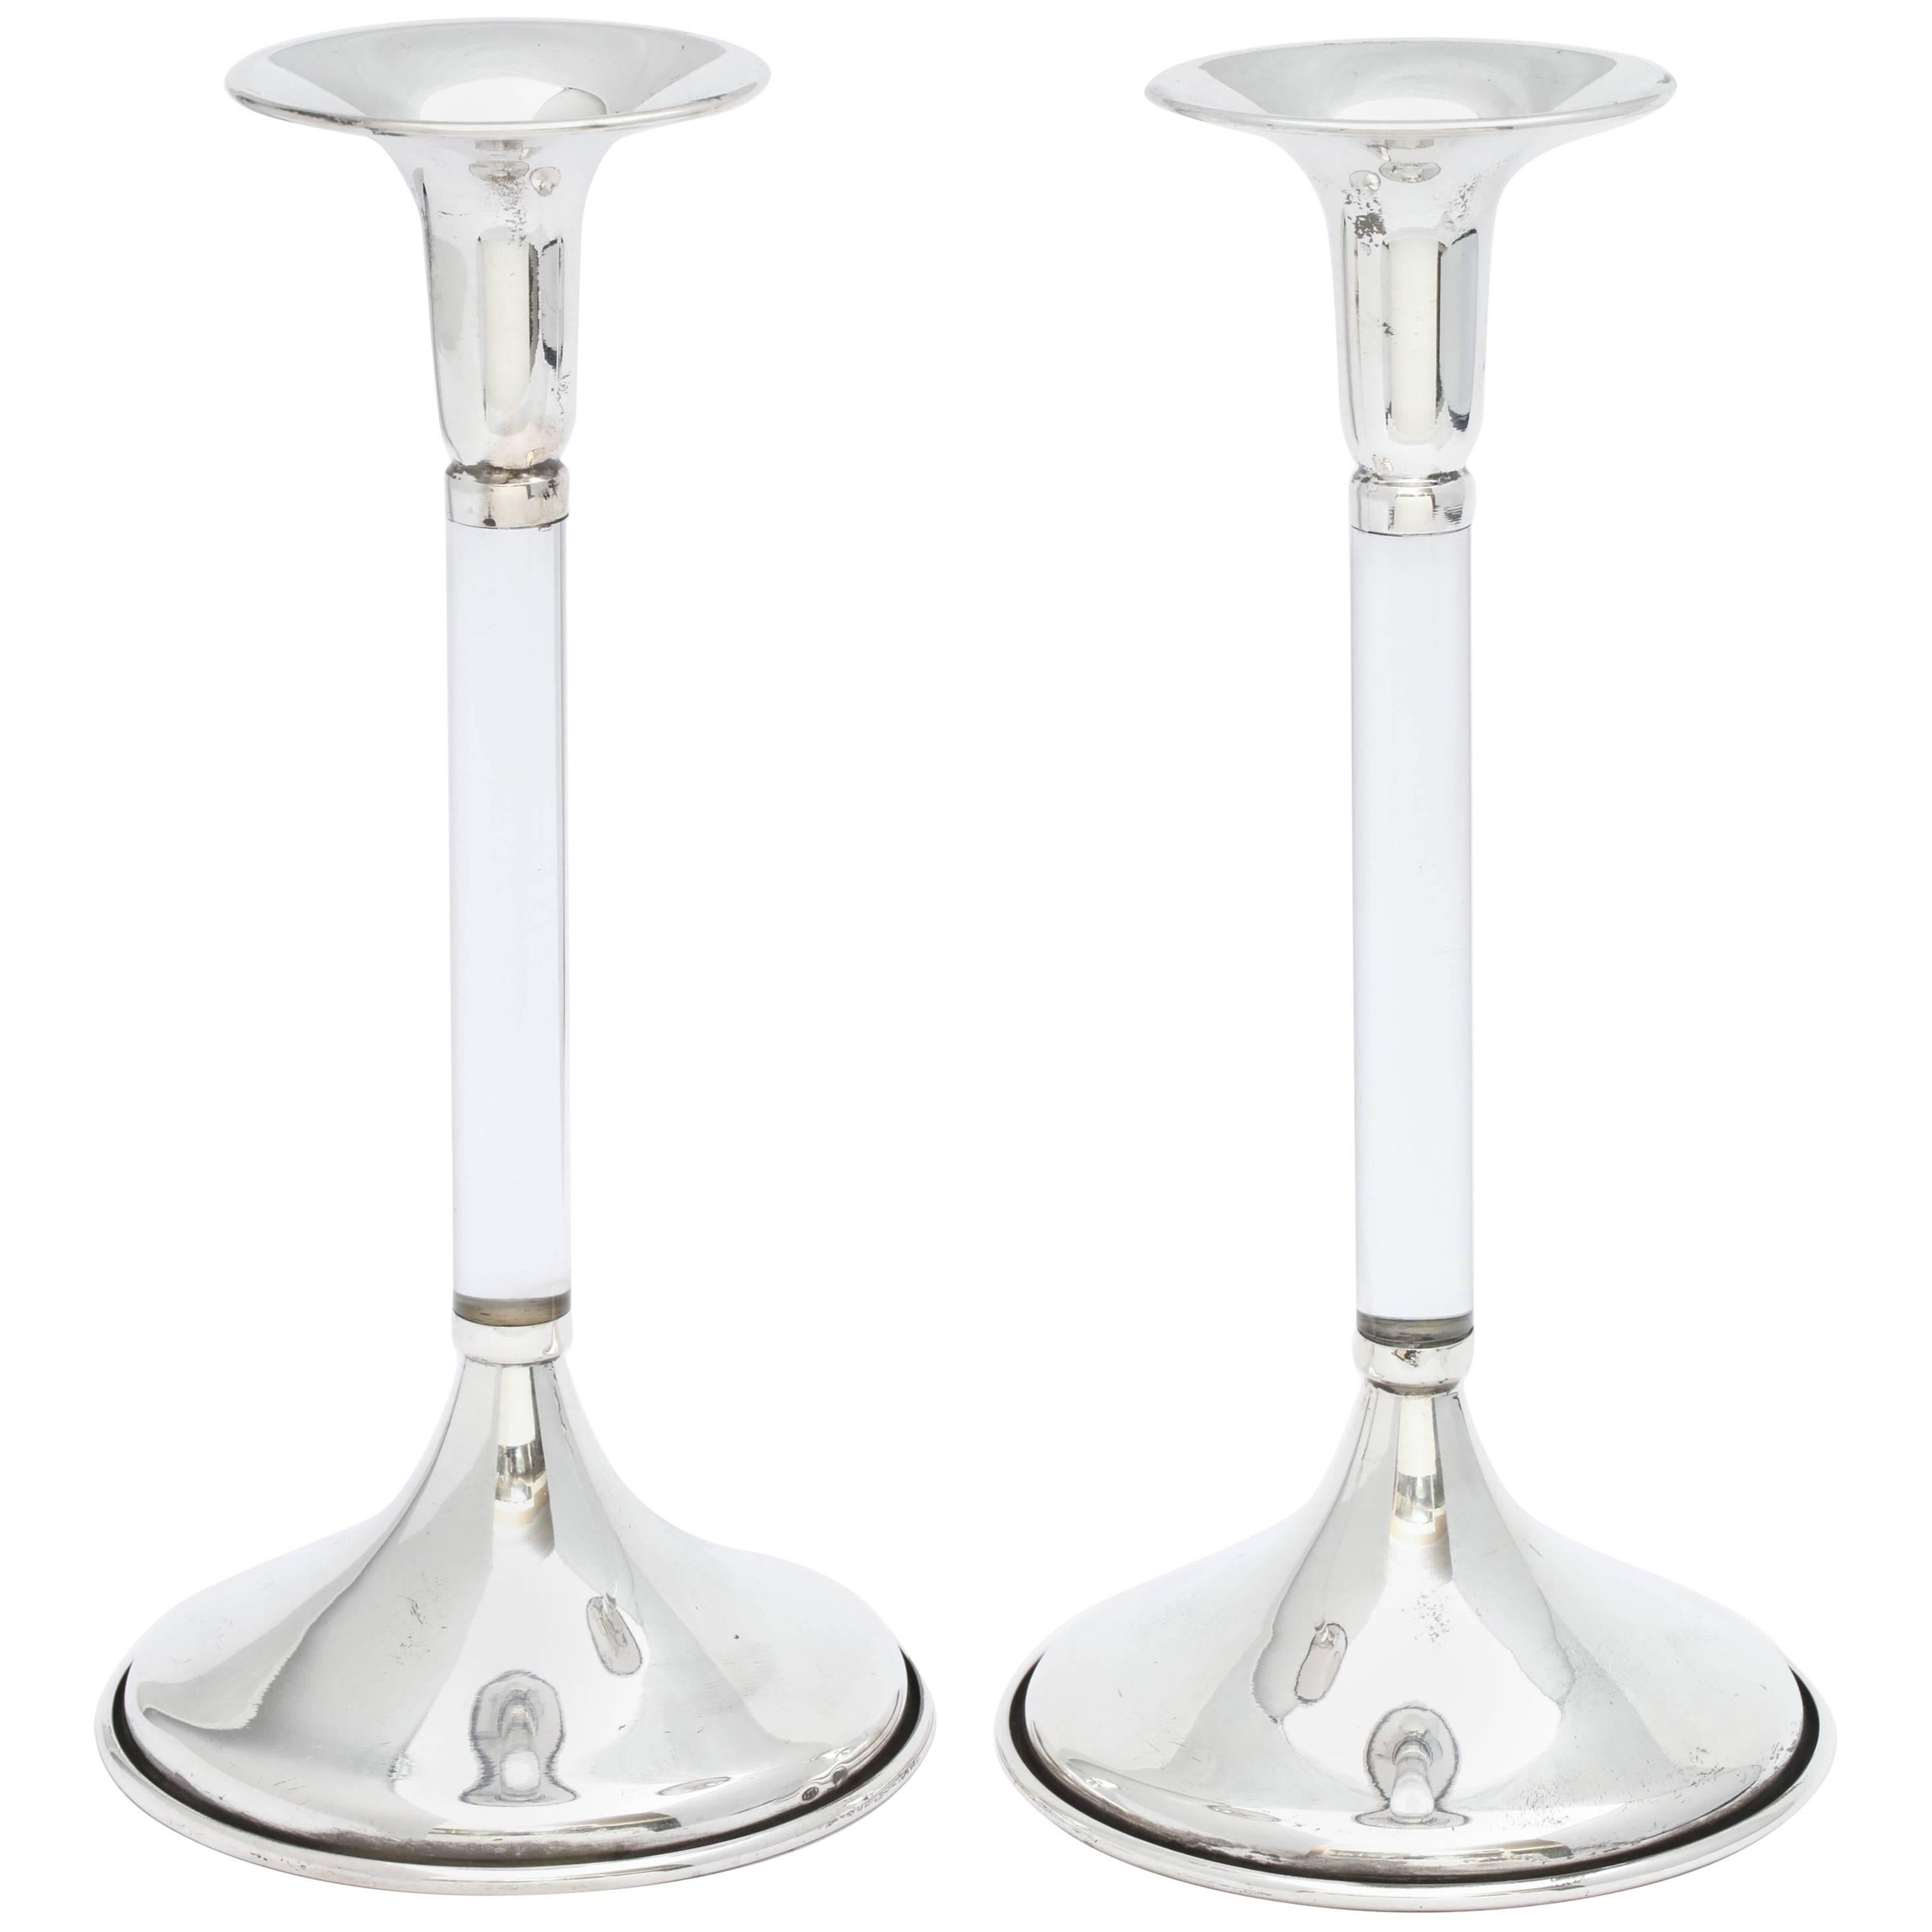 Pair of Mid-Century Modern Sterling Silver-Mounted Lucite Candlesticks